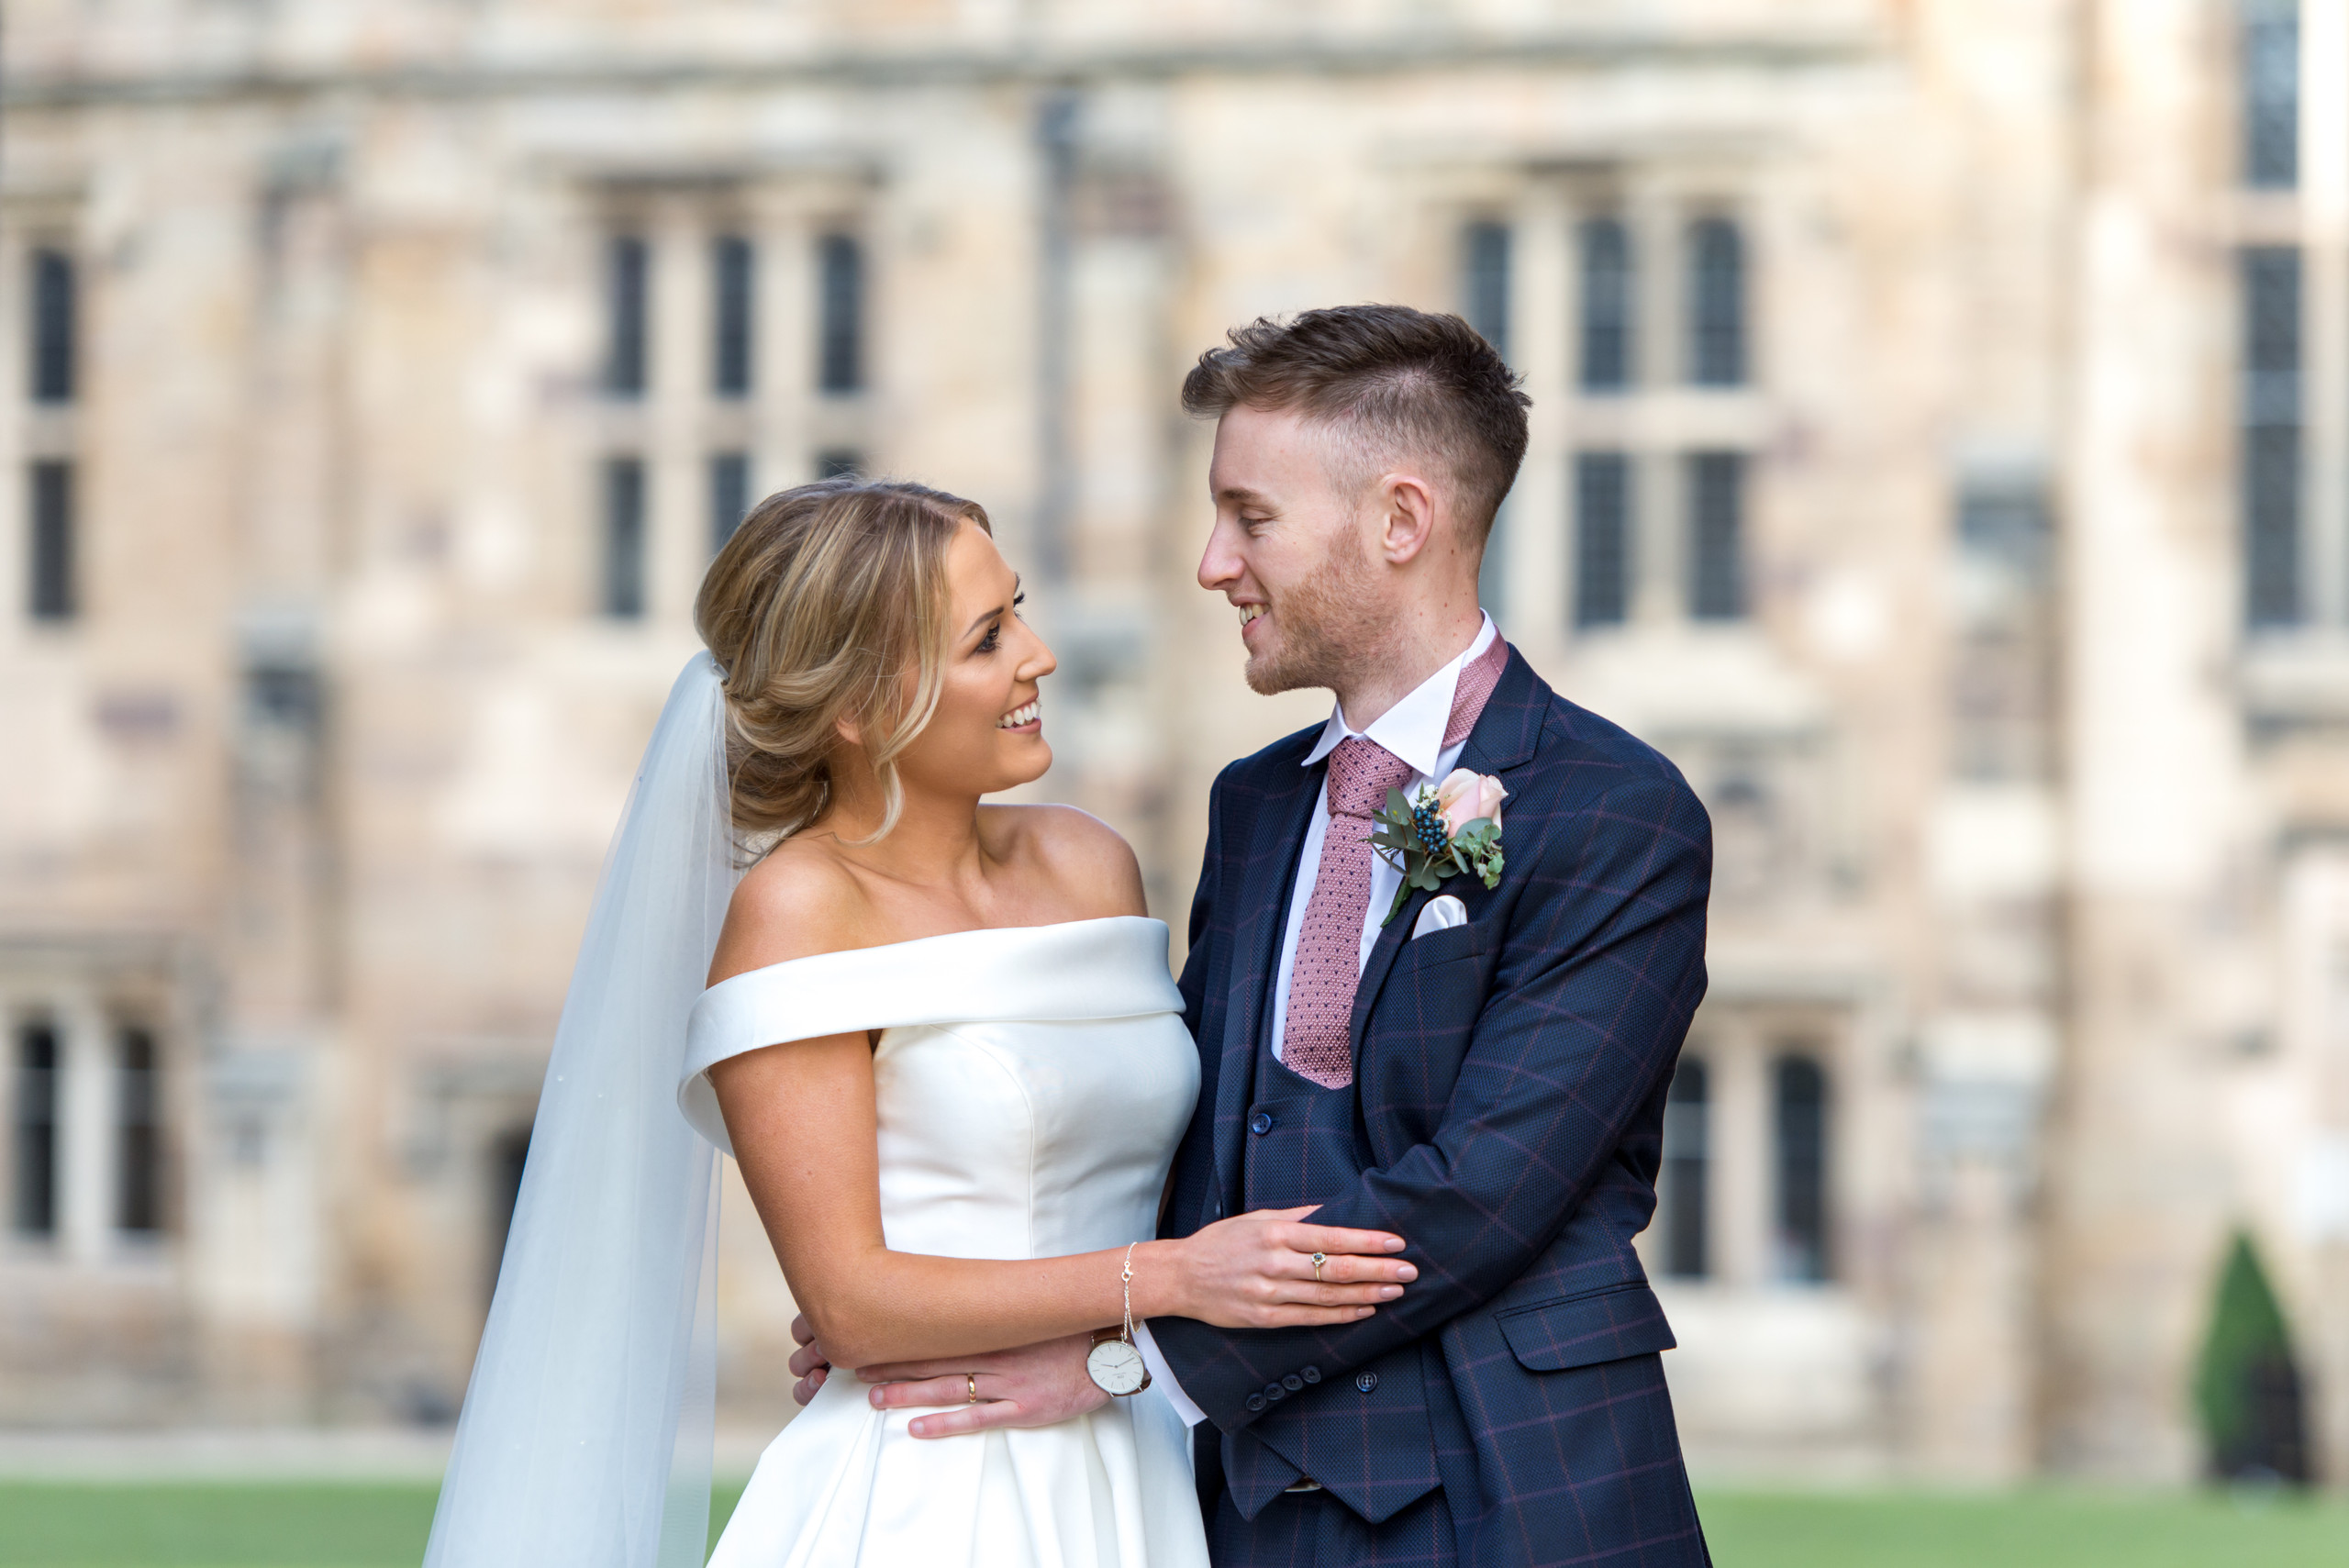 Relaxed wedding photography of bride and groom smiling in Inner Bailey of historic venue Durham Castle in Durham City